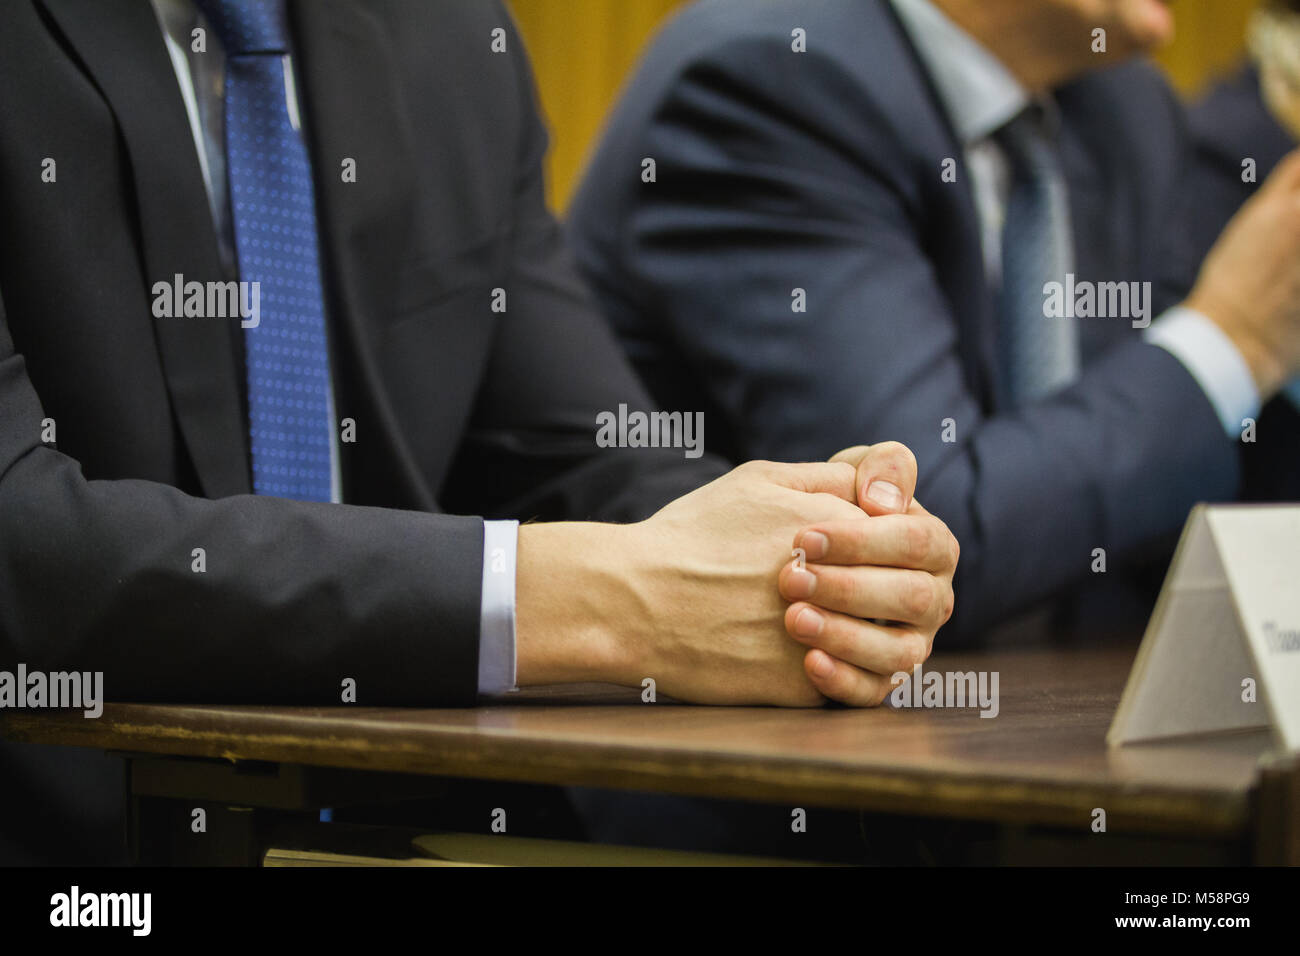 Businessman's hand at conference or meeting, financial concept - Stock Image